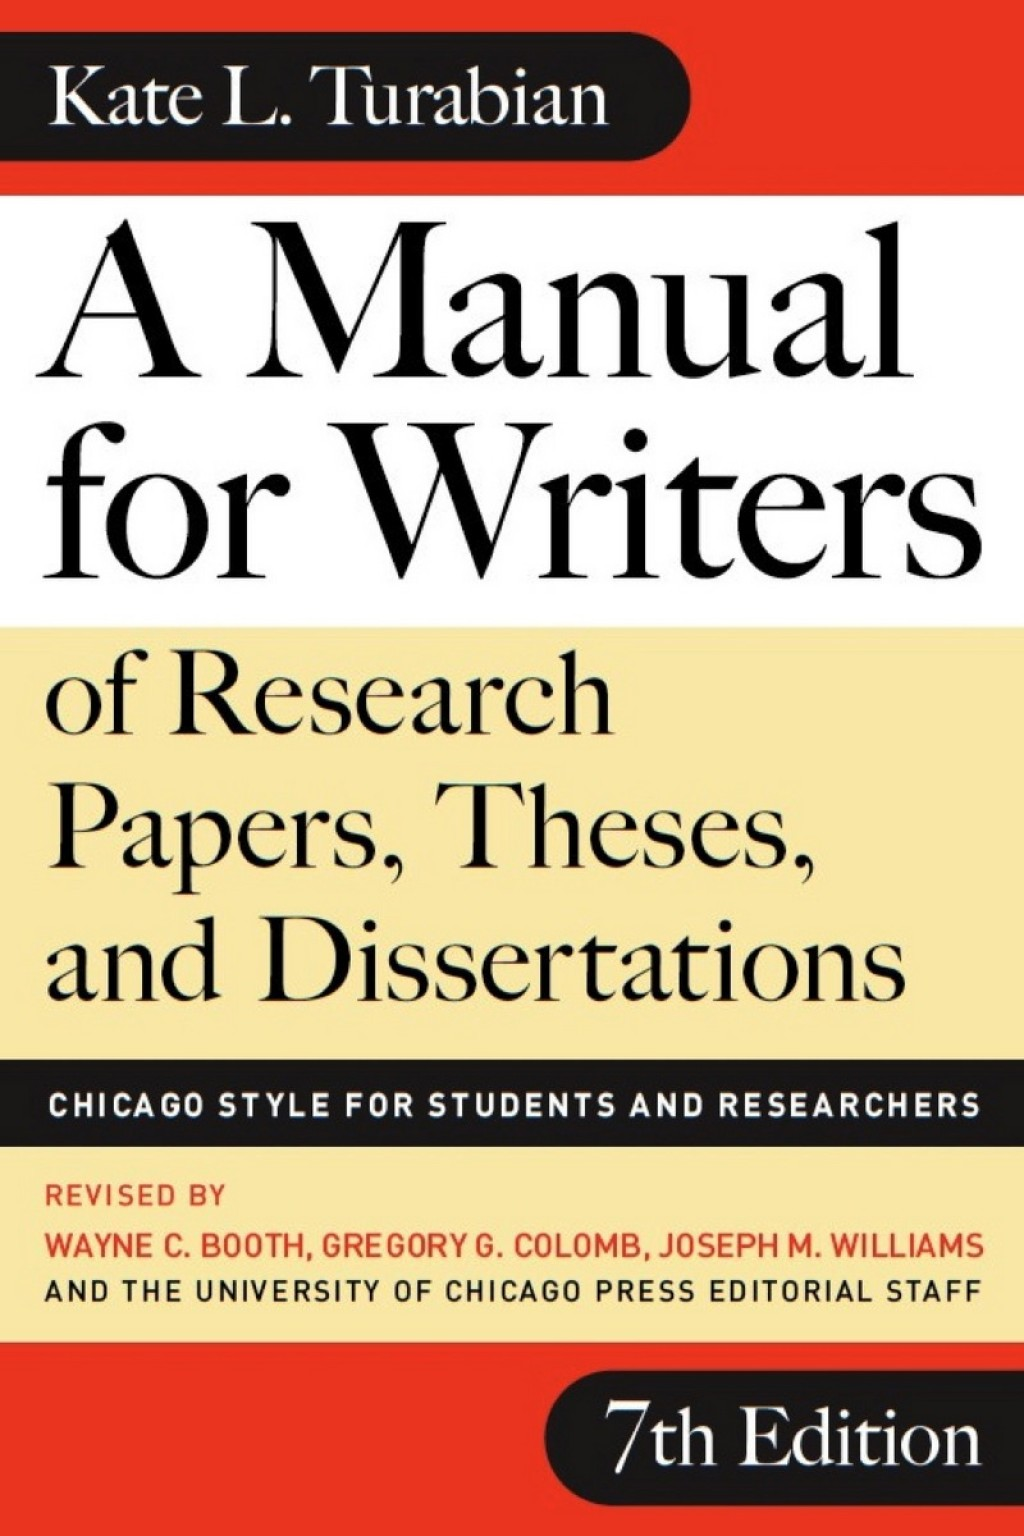 009 Research Paper Frontcover Manual For Writers Of Papers Theses And Sensational A Dissertations Ed. 8 Turabian Ninth Edition Large